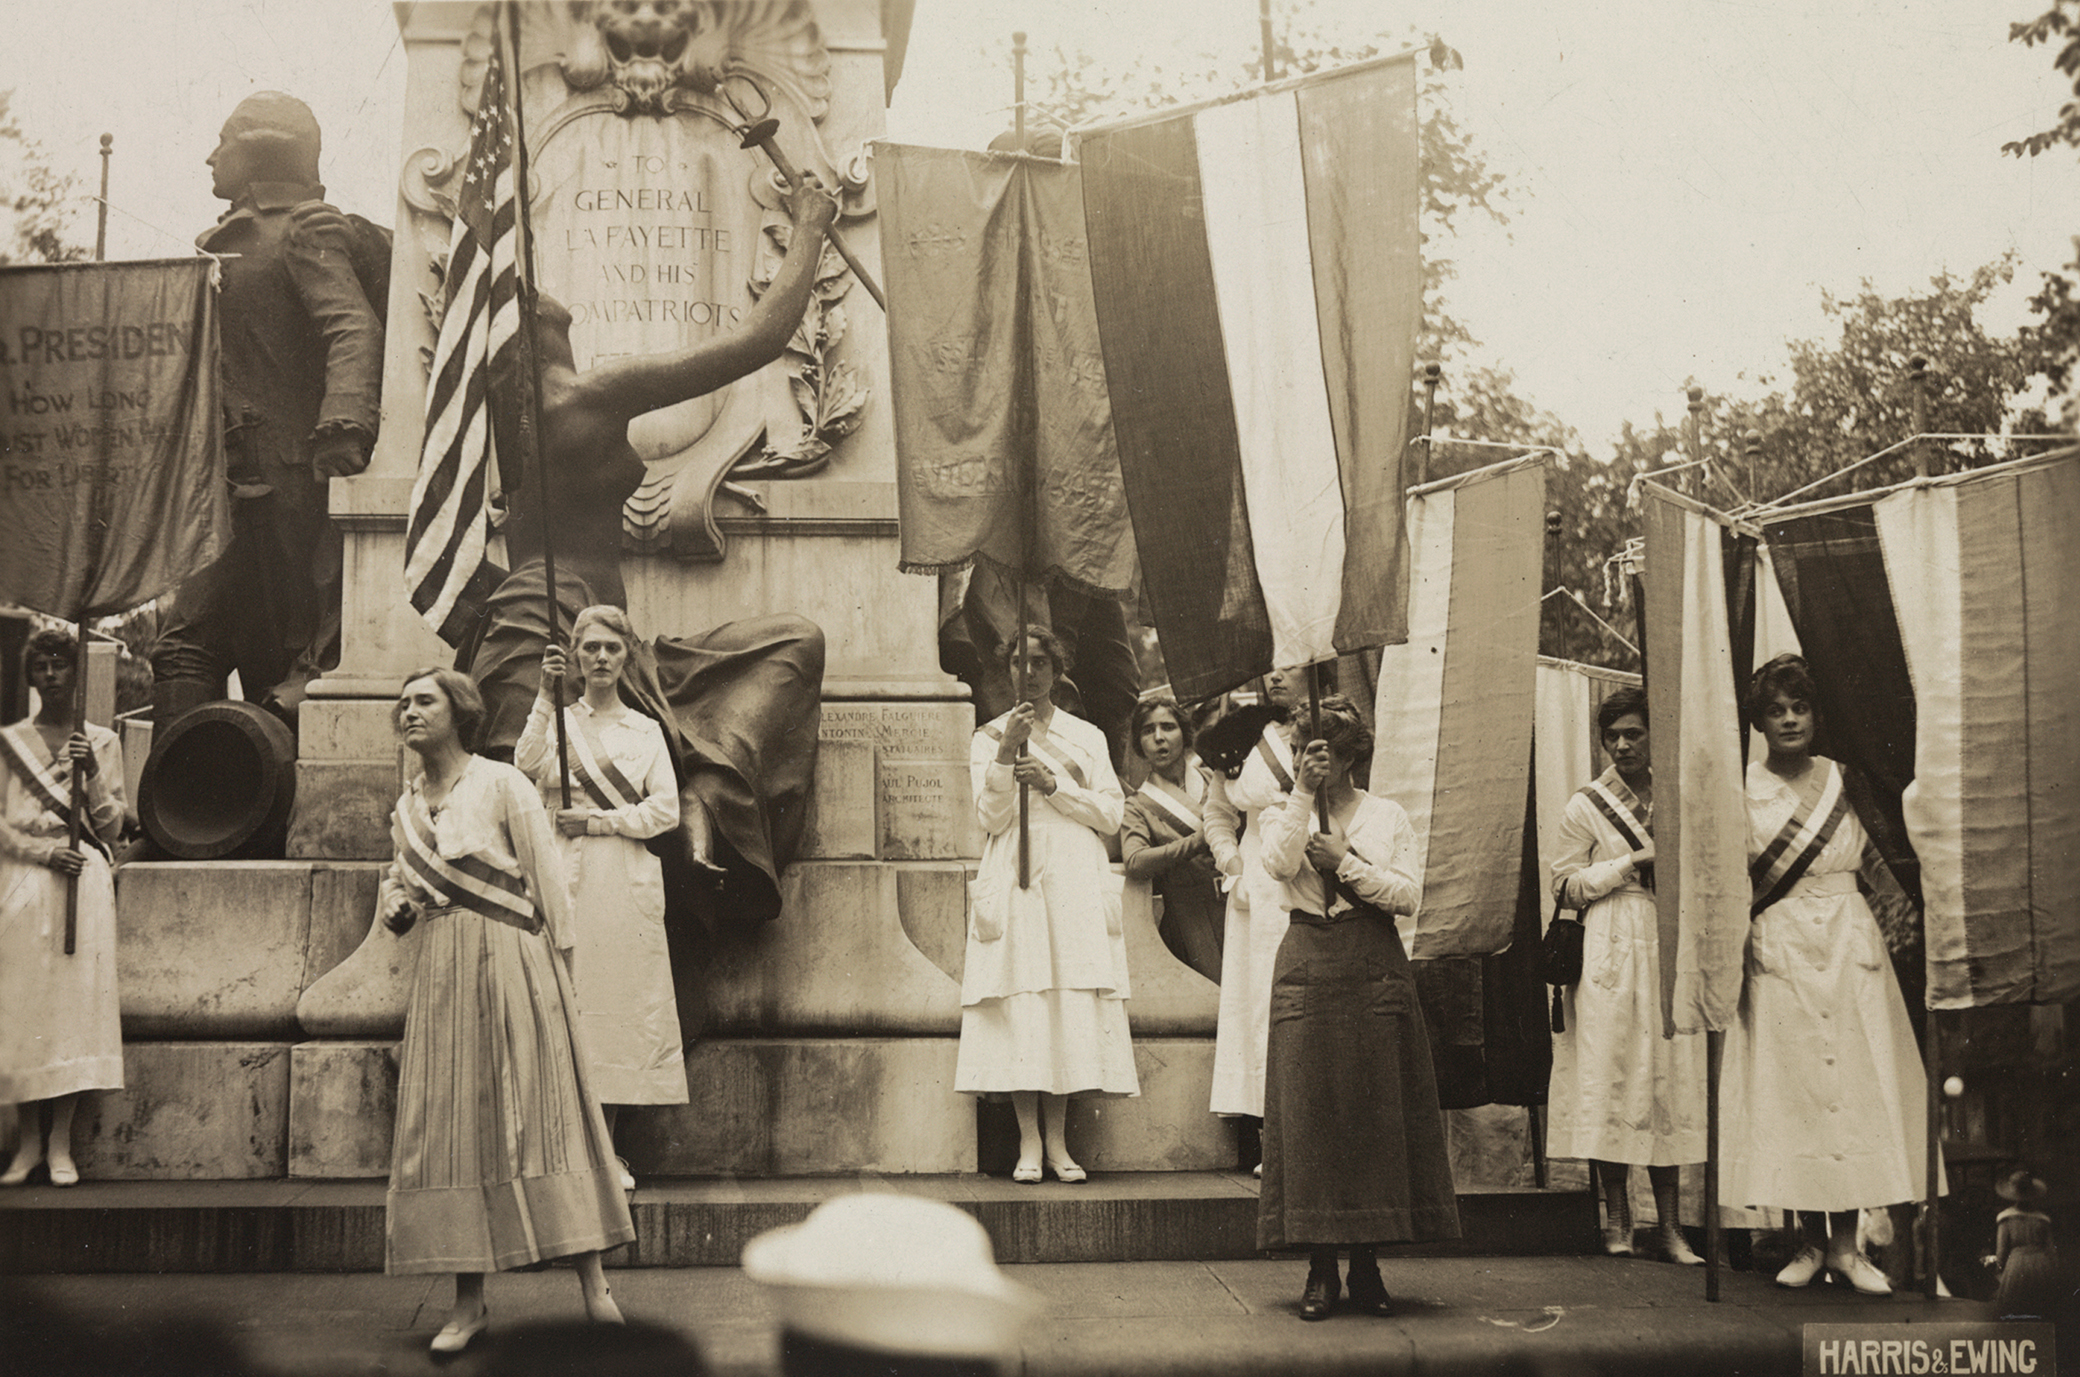 Suffrage demonstration to get the last vote in the Senate before June 4, 1919. Photograph by Harris & Ewing. Library of Congress, Prints and Photographs Division.